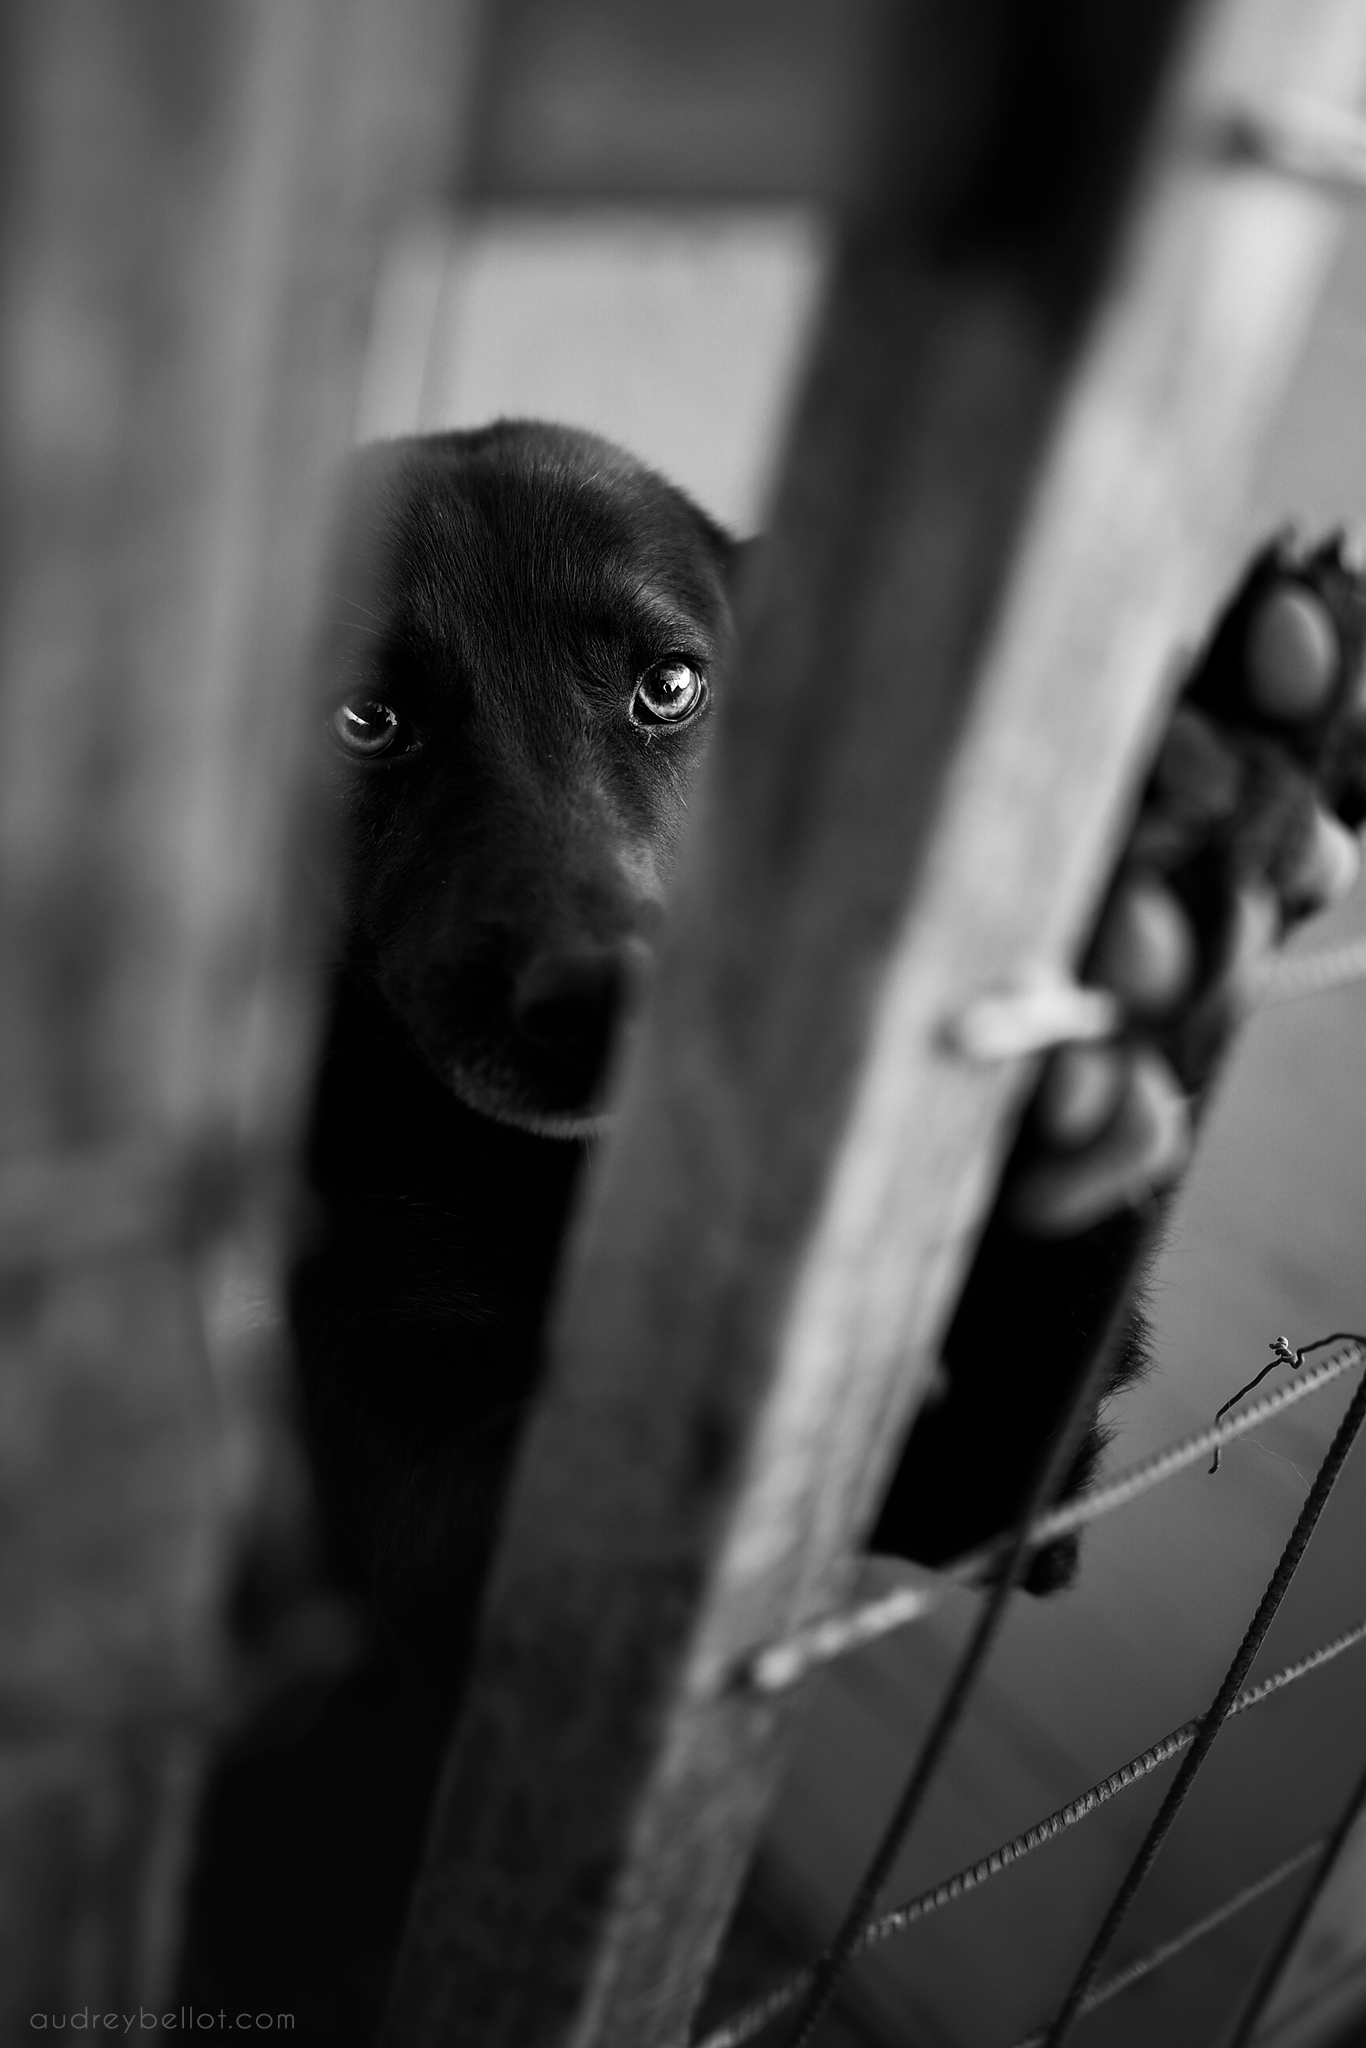 Audrey Bellot Photographer Romanian dog shelter dog photographer abandonned dogs